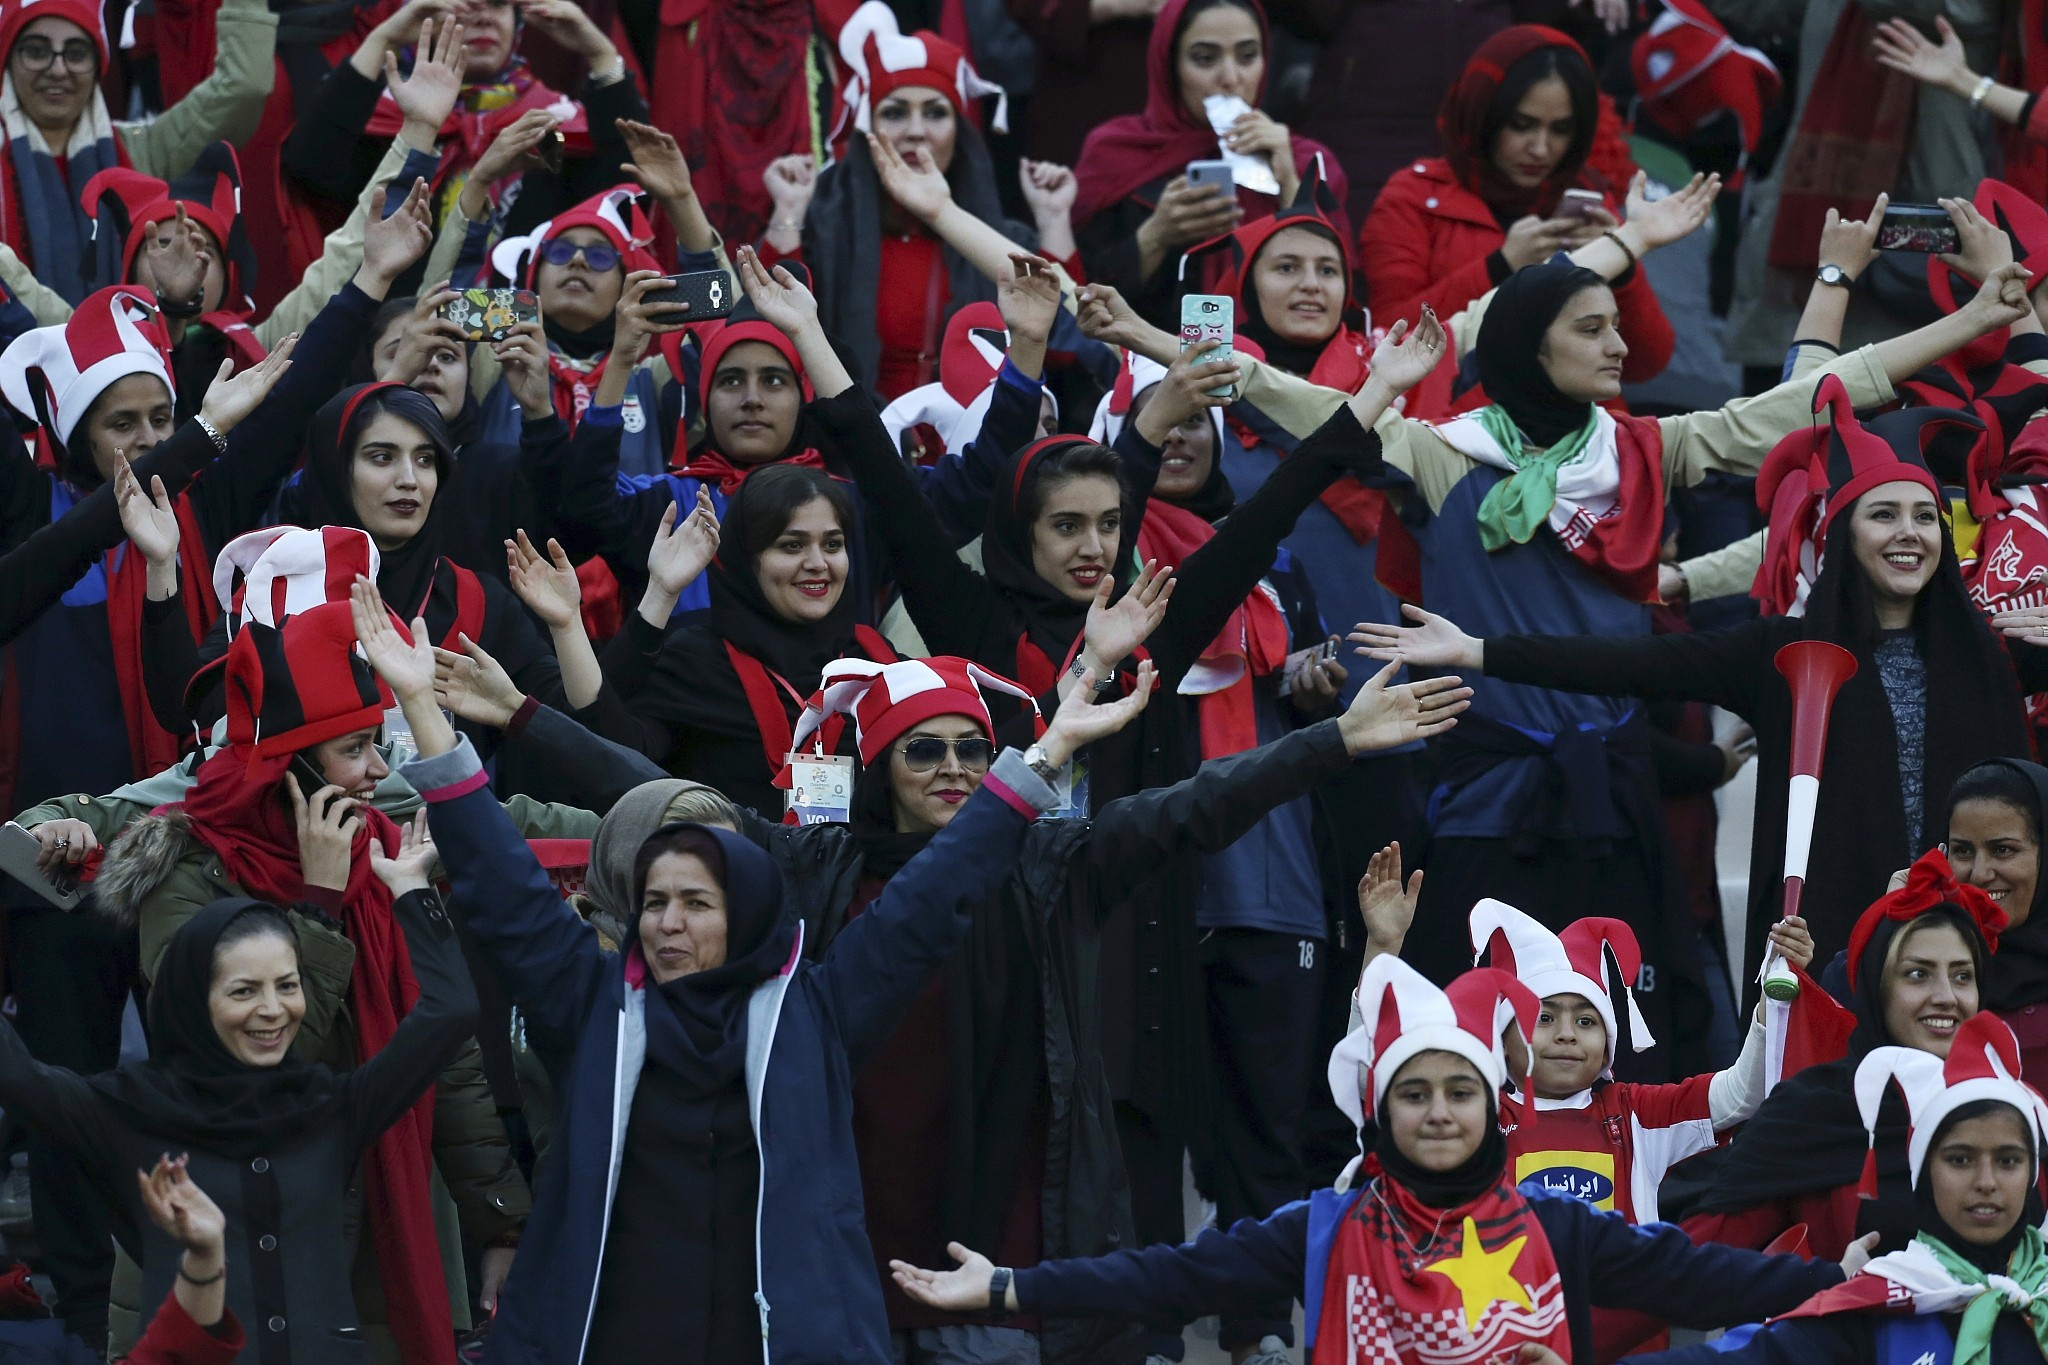 In First Iran Allows Women To Attend Major Soccer Match In Tehran The Times Of Israel